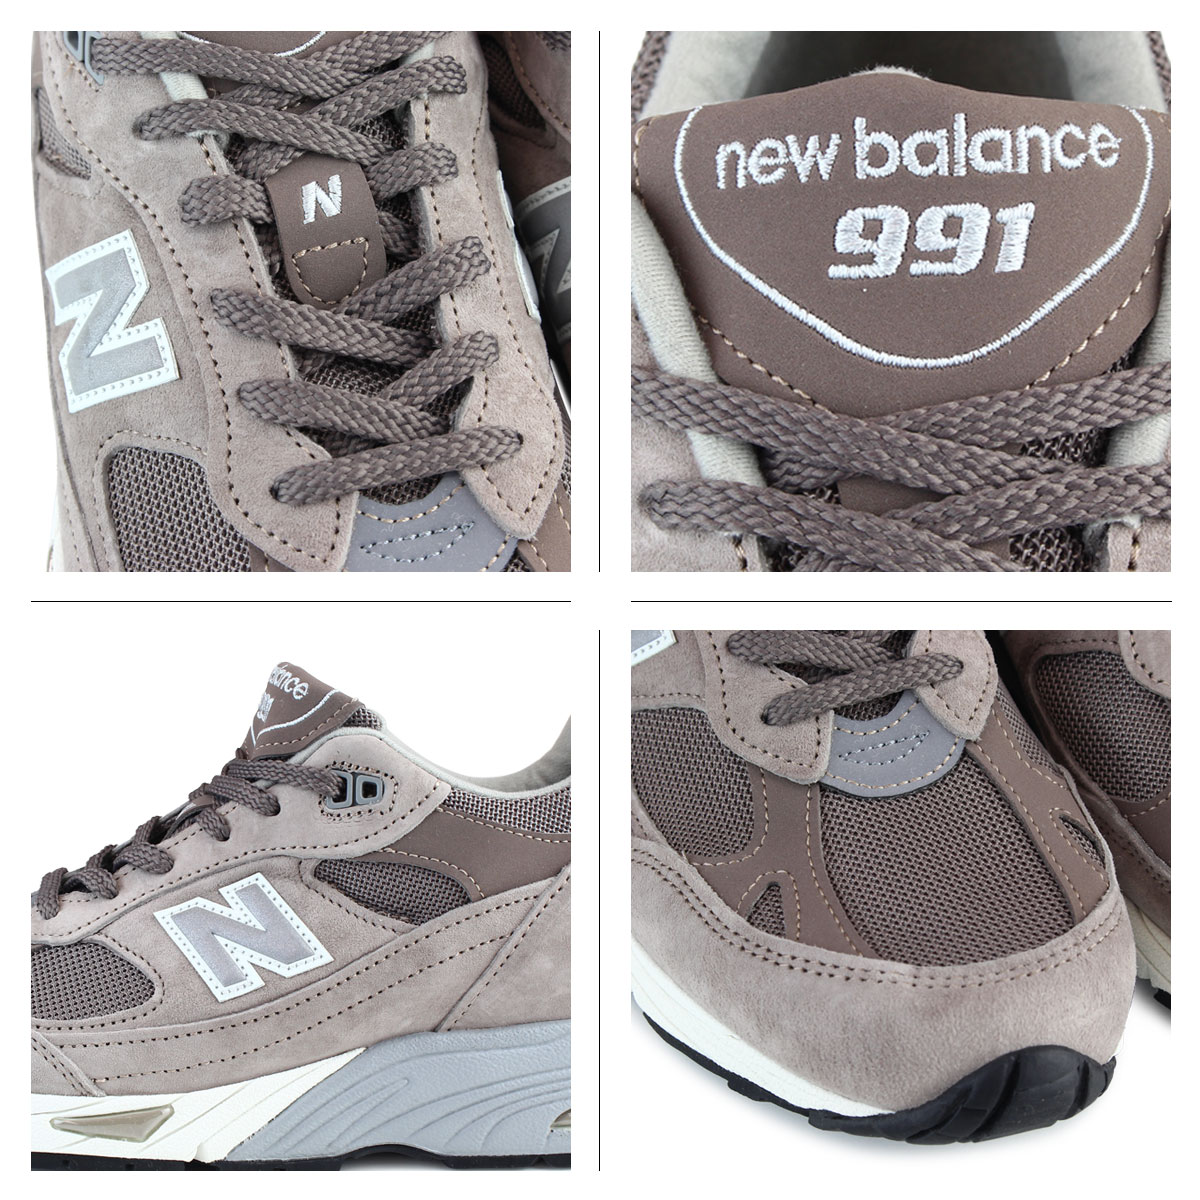 e3692e3e42a [NEW BALANCE which wears it, and has a good reputation for a feeling, and  is loved for many years by sneakers freak]